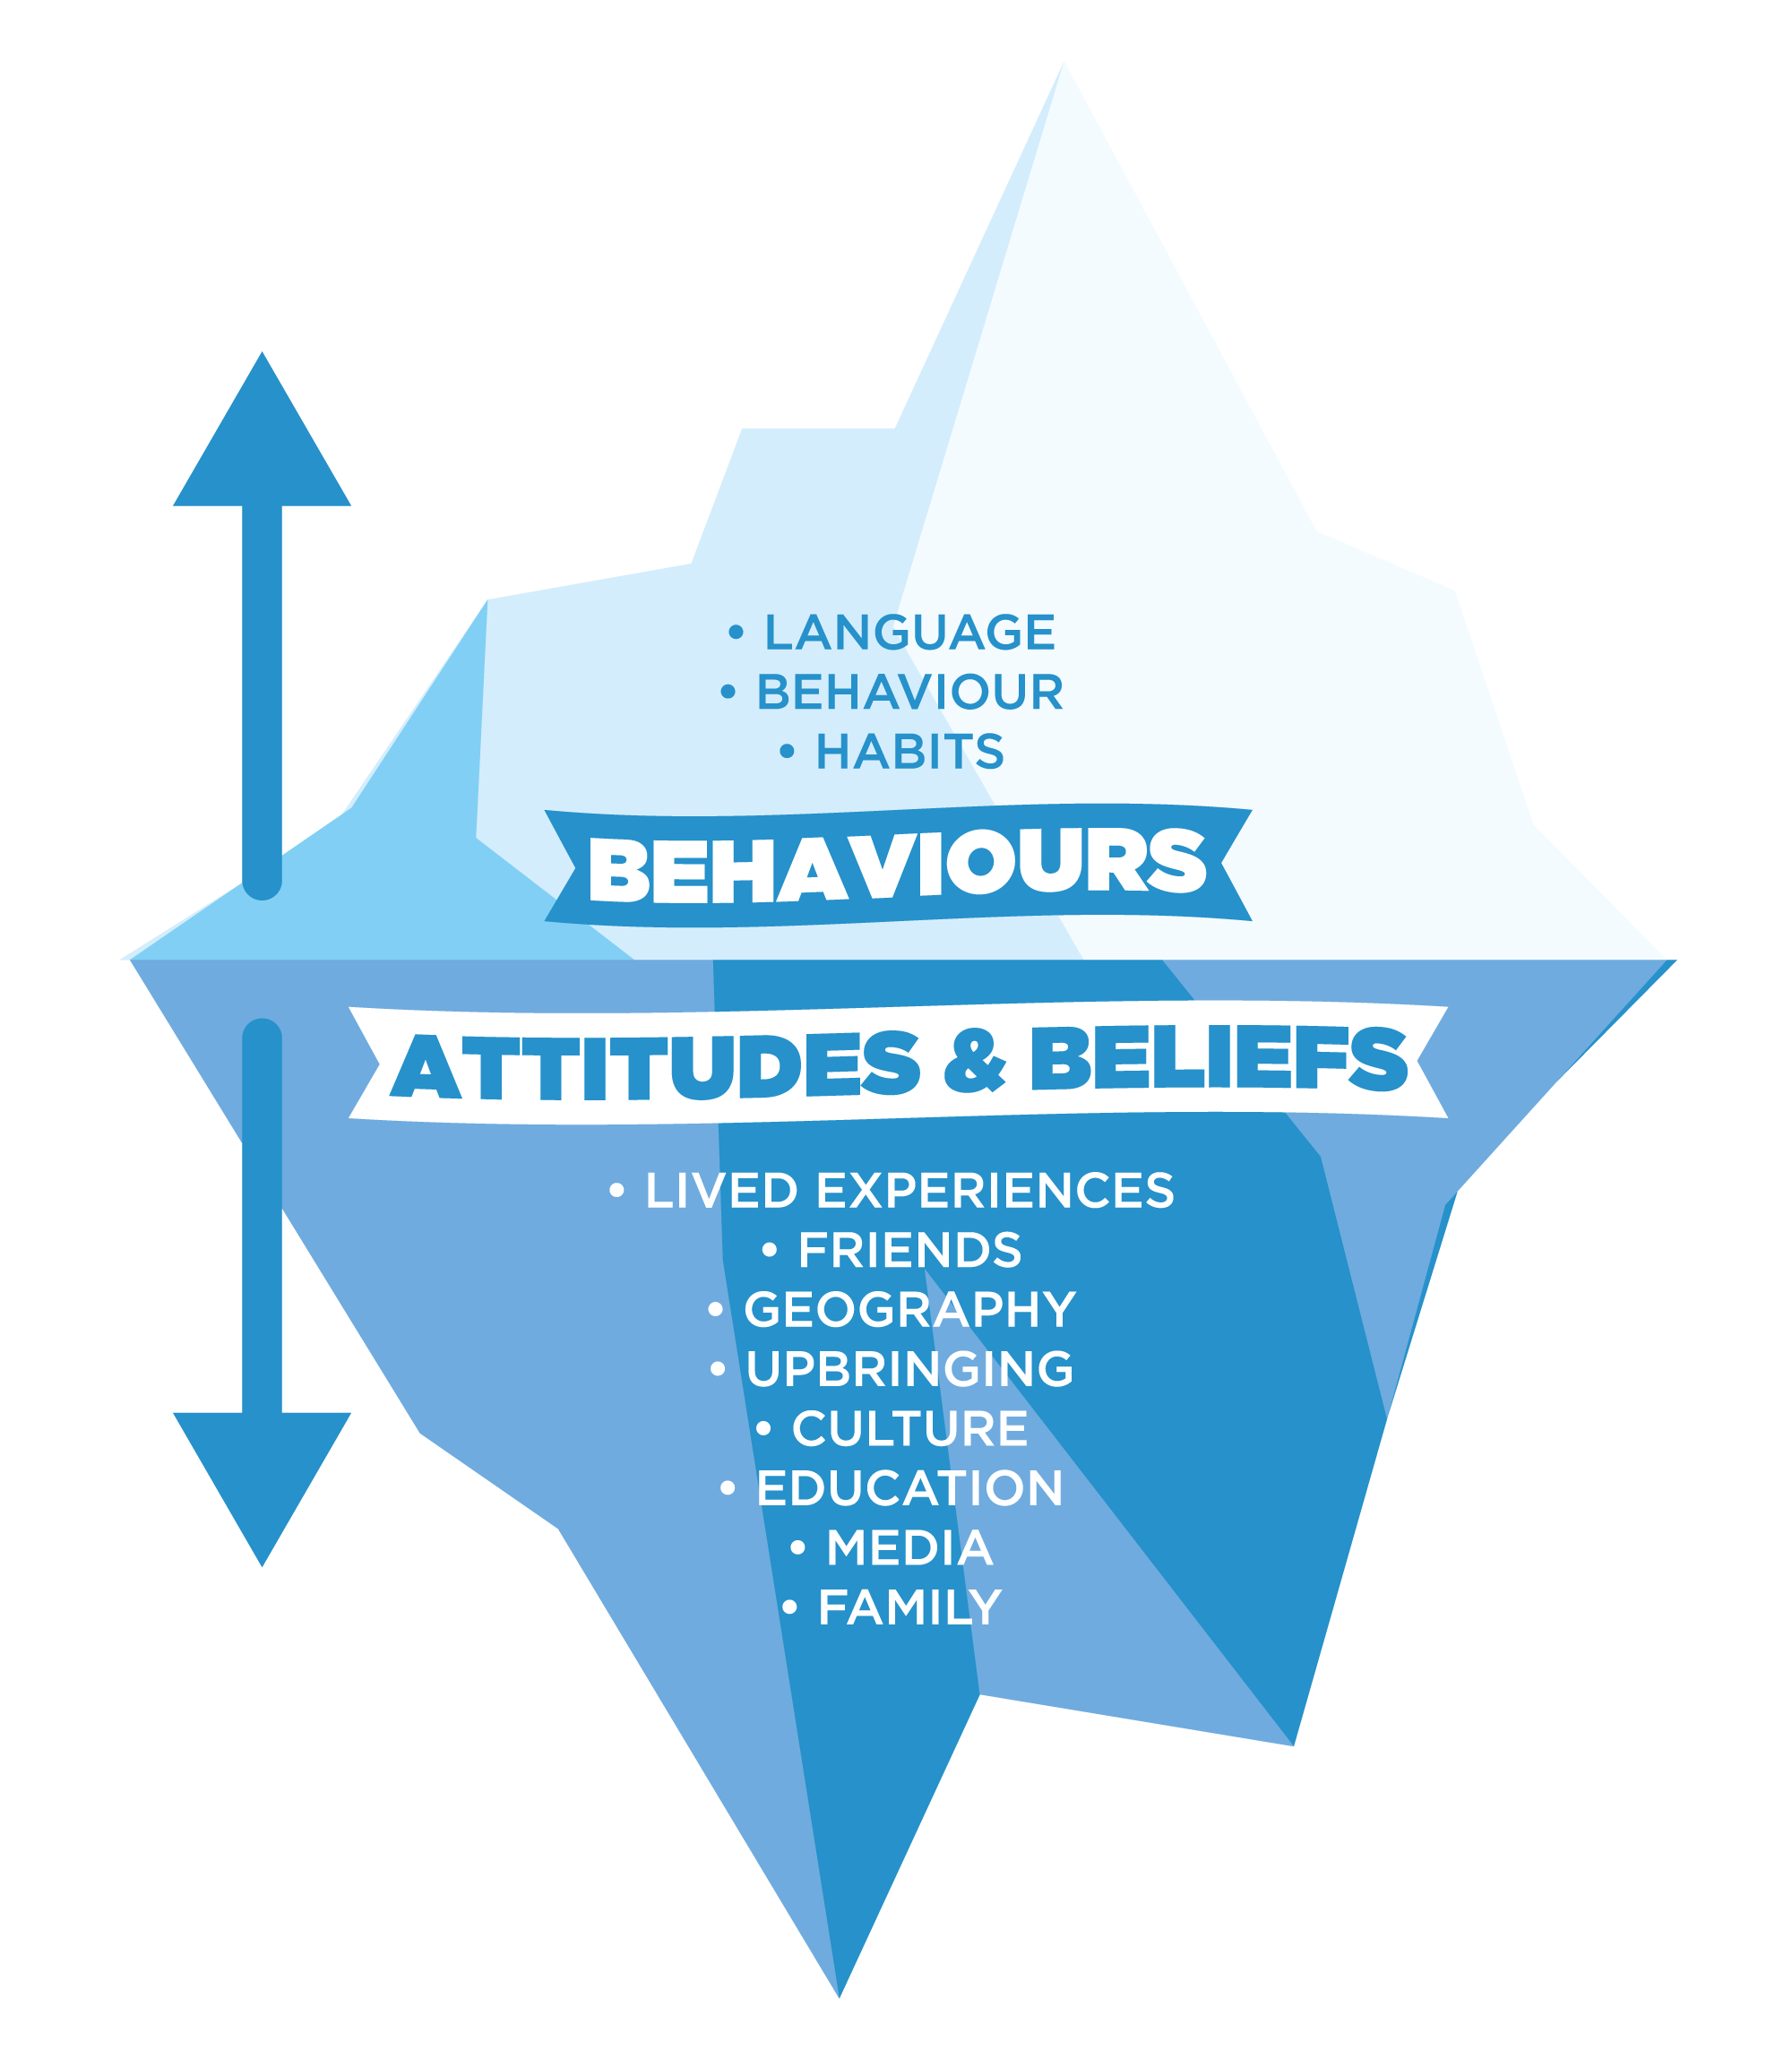 Behaviours such as: Language and habits.  Attitudes & beliefs such as: Lived experiences, friends, geography, upbringing, culture, education, media, family